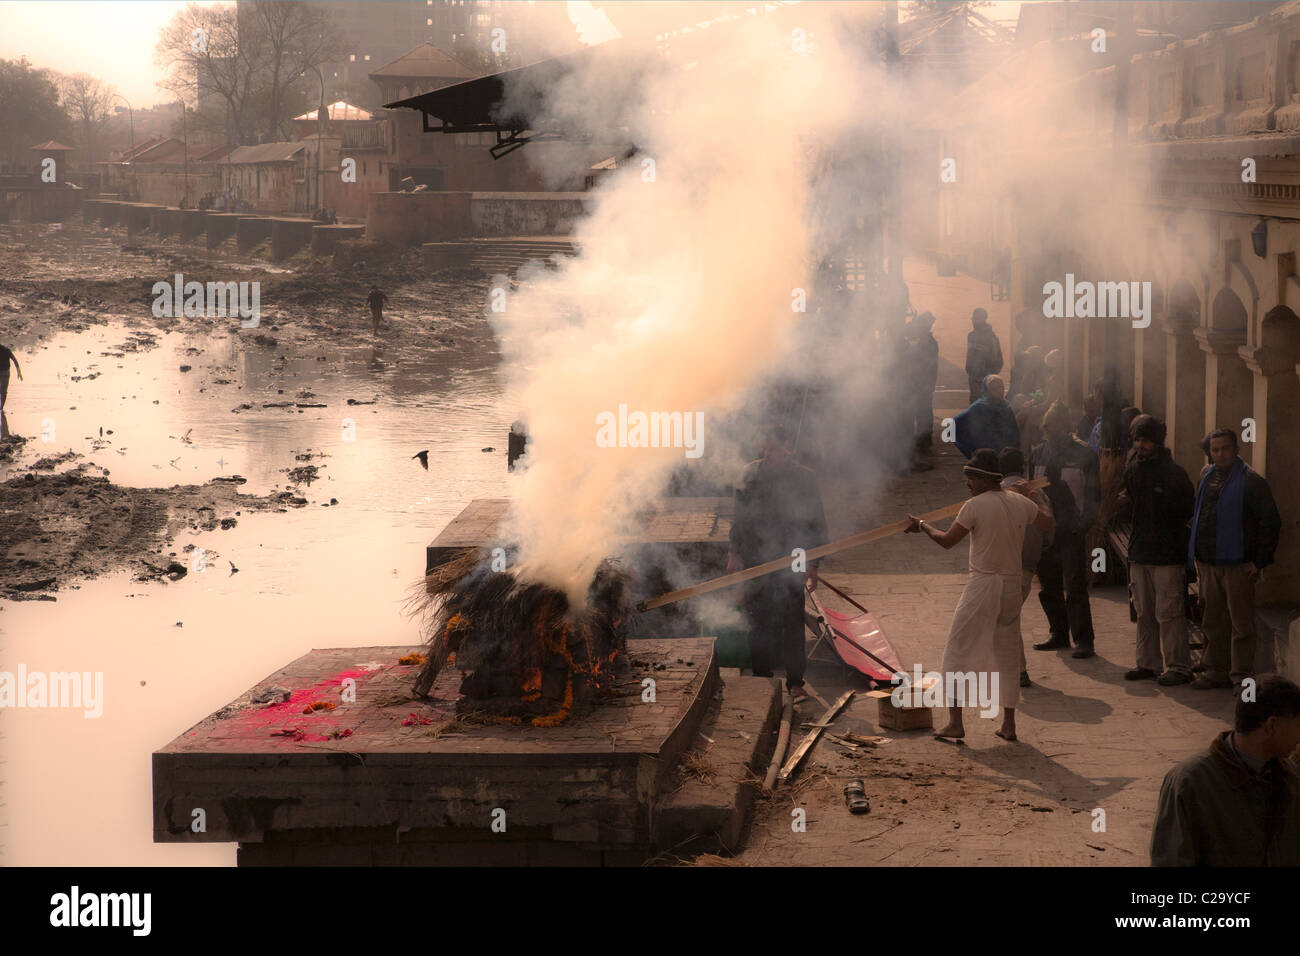 Hindu funeral rite. Burning bodies on pyre at Pashupatinath Temple. Nepal, Asia - Stock Image